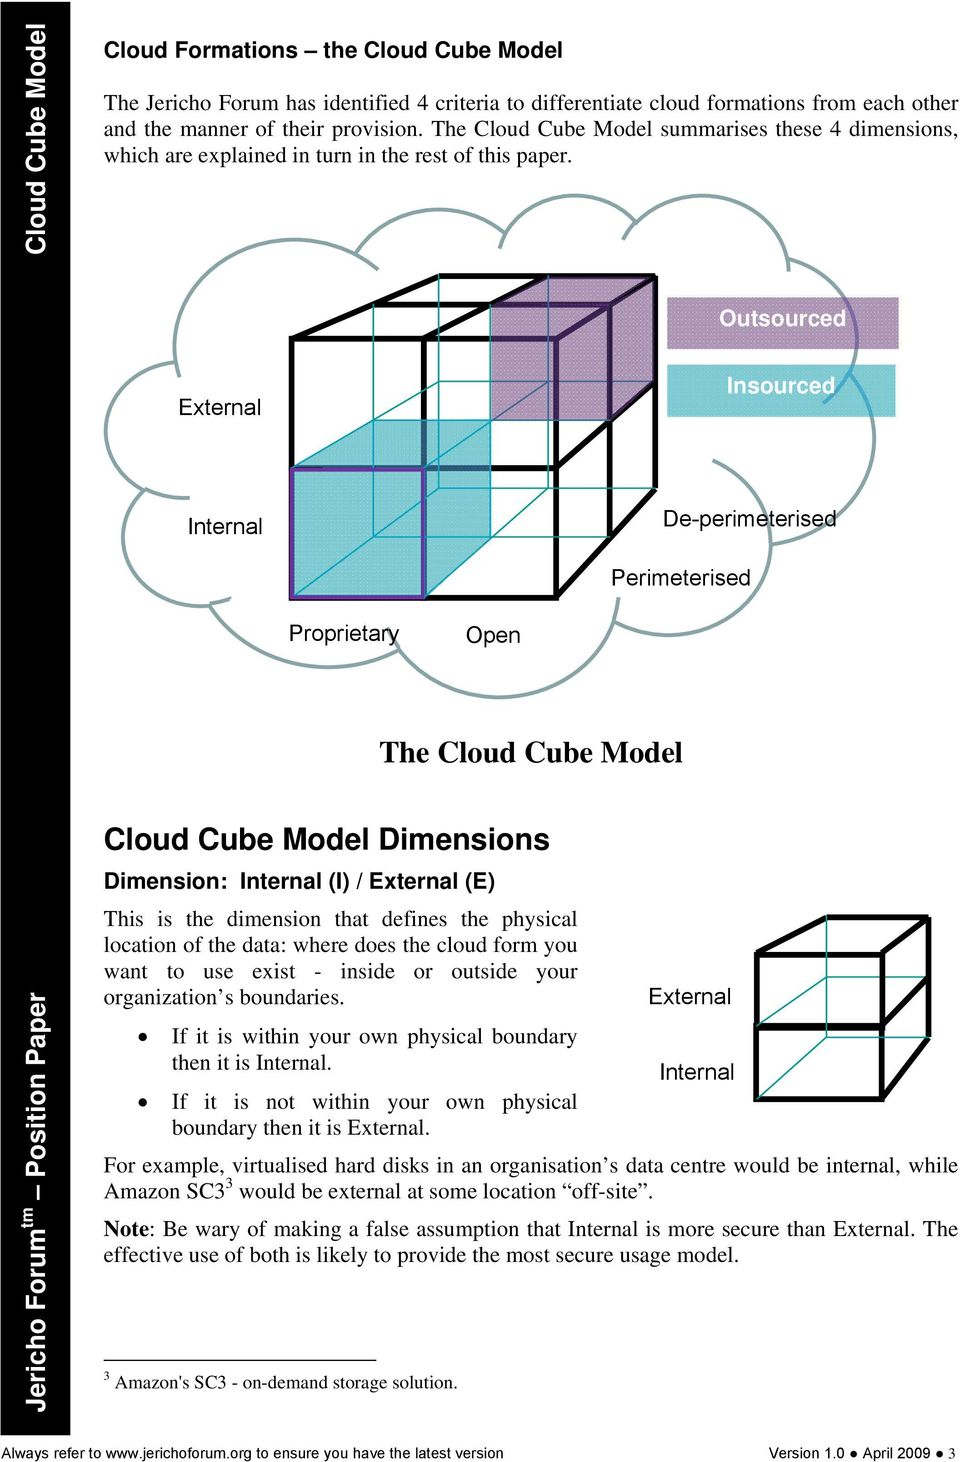 External Internal Proprietary The Cloud Cube Model Cloud Cube Model Dimensions Dimension: Internal (I) / External (E) This is the dimension that defines the physical location of the data: where does